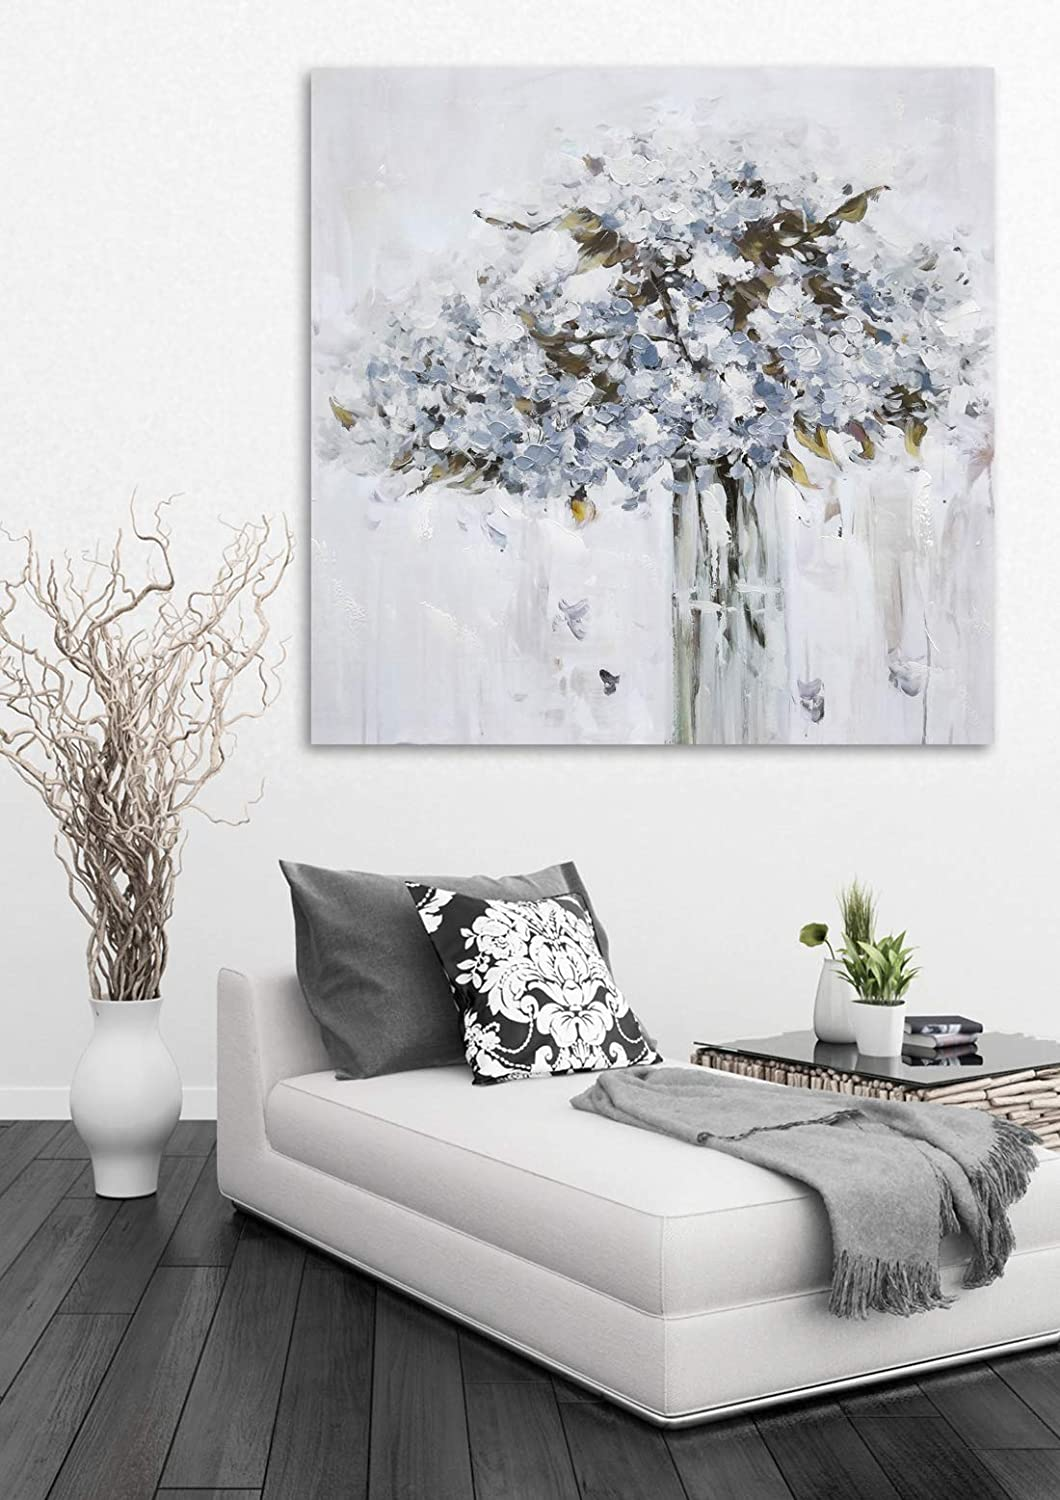 Large Flower Canvas Wall Art for Home Decor, Blue Color Pottery Vase Blossom Oil Paintings, 3D Hand Painted Modern Floral Pictures for Living Room, Framed and Stretched Ready to Hang 28x28 inch